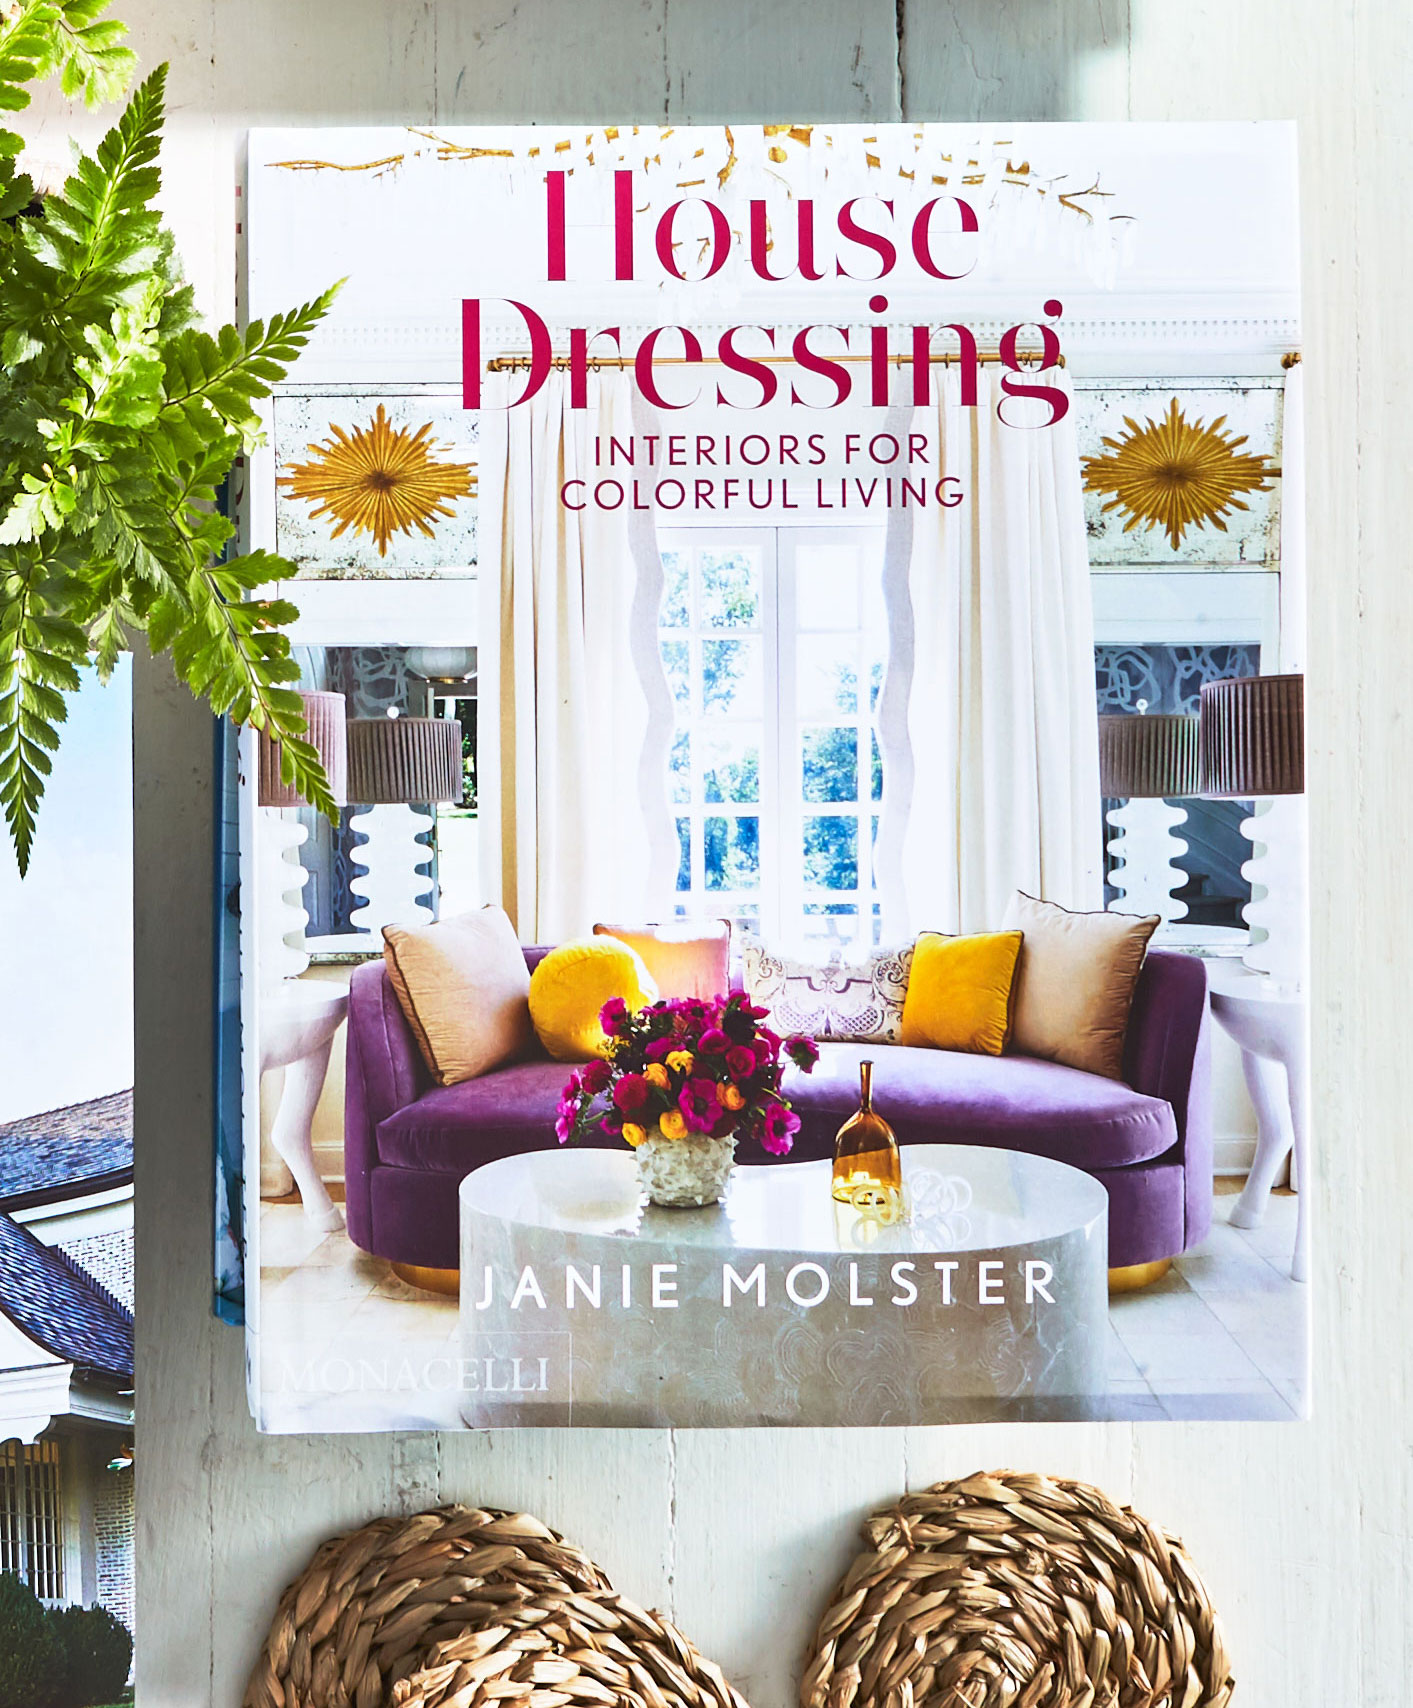 House Dressing: Interiors for Colorful Living